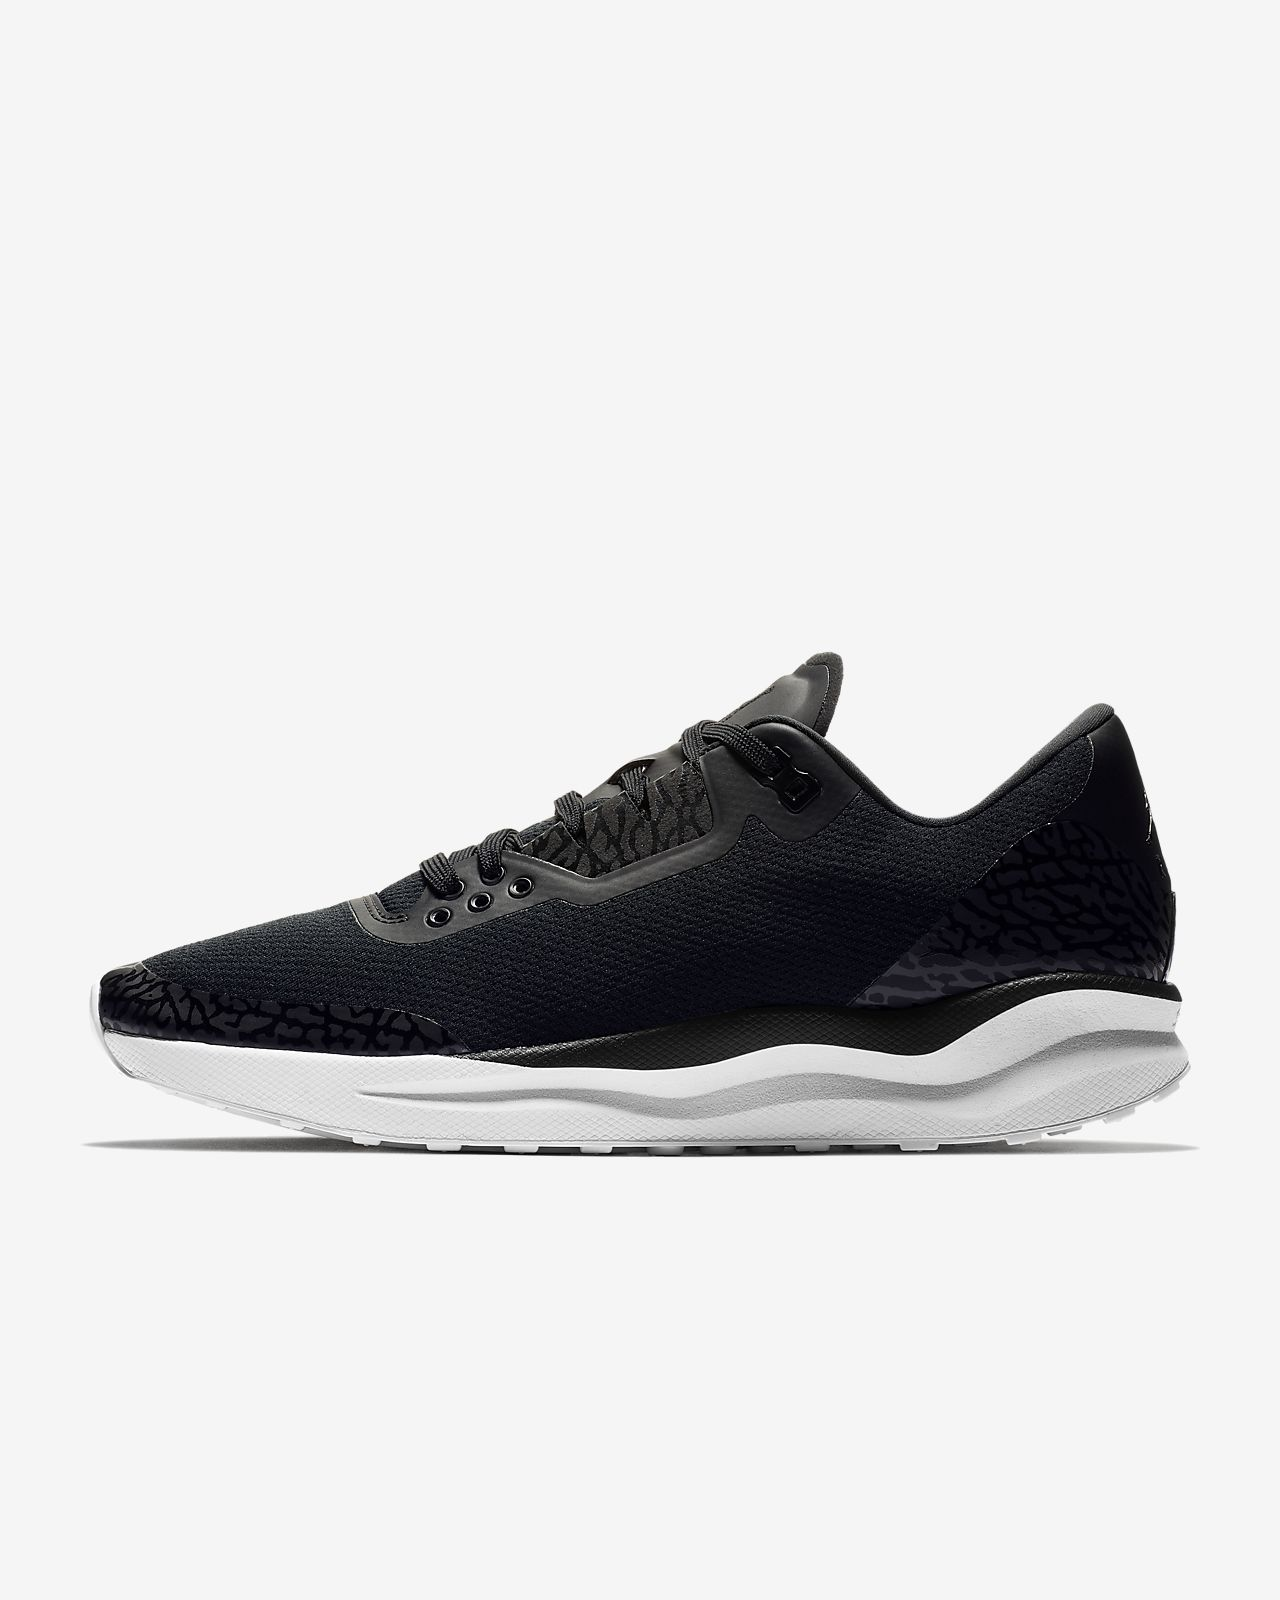 aea4e3cd60e9d7 Jordan Zoom Tenacity 88 Men s Running Shoe. Nike.com